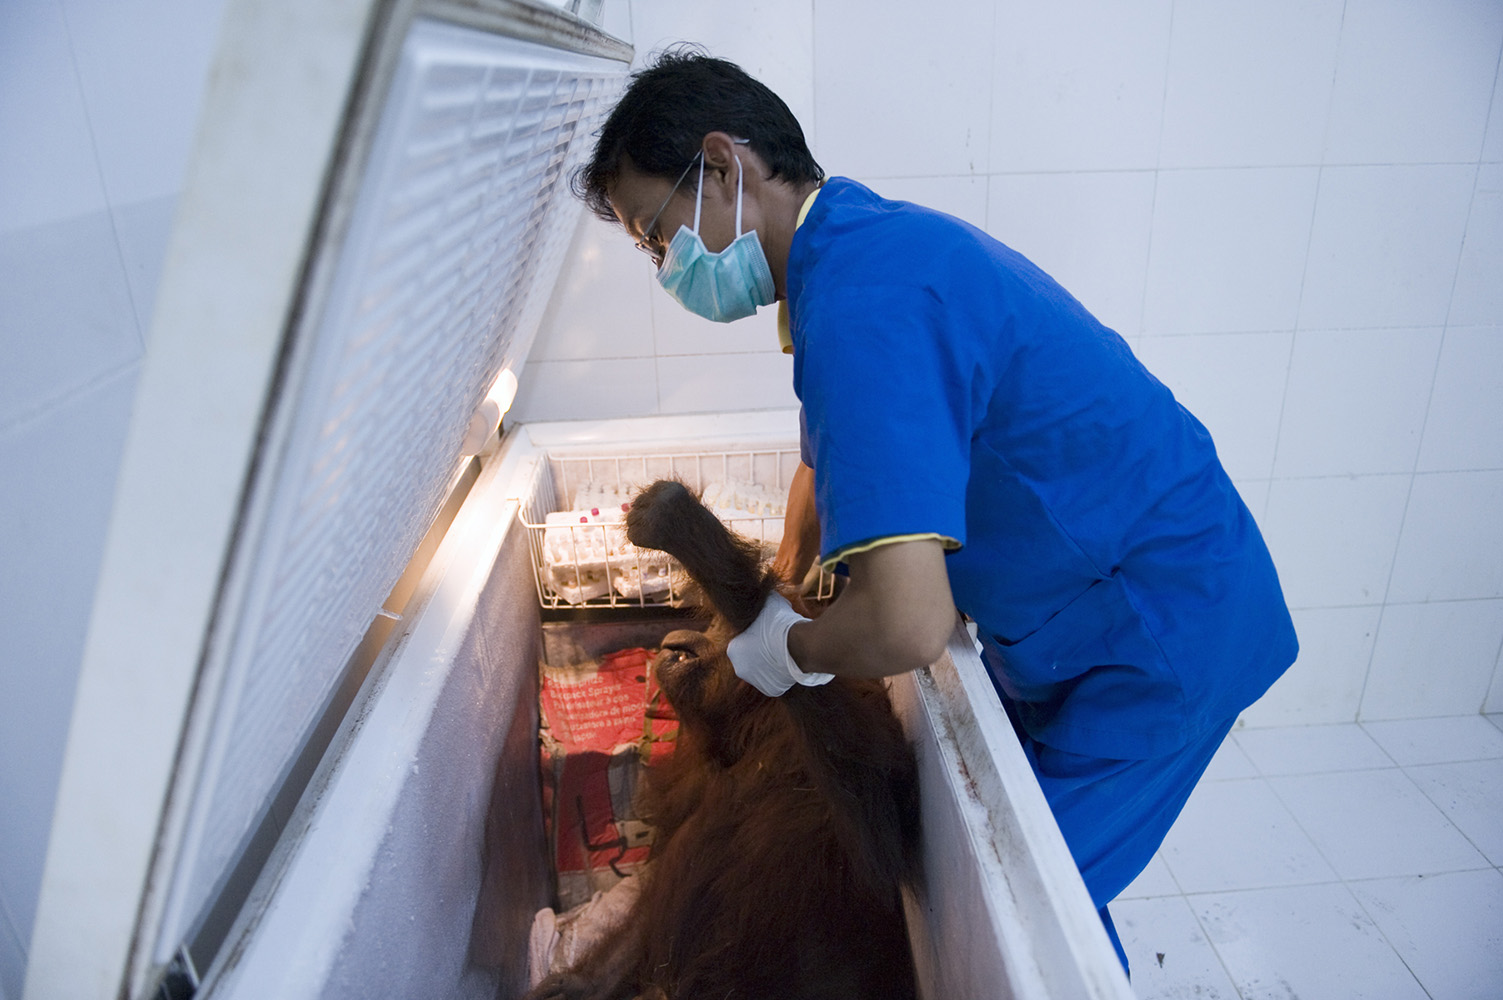 Dead orangutan kept in a freezer waiting for autopsy. It was found likely beaten to death by humans.